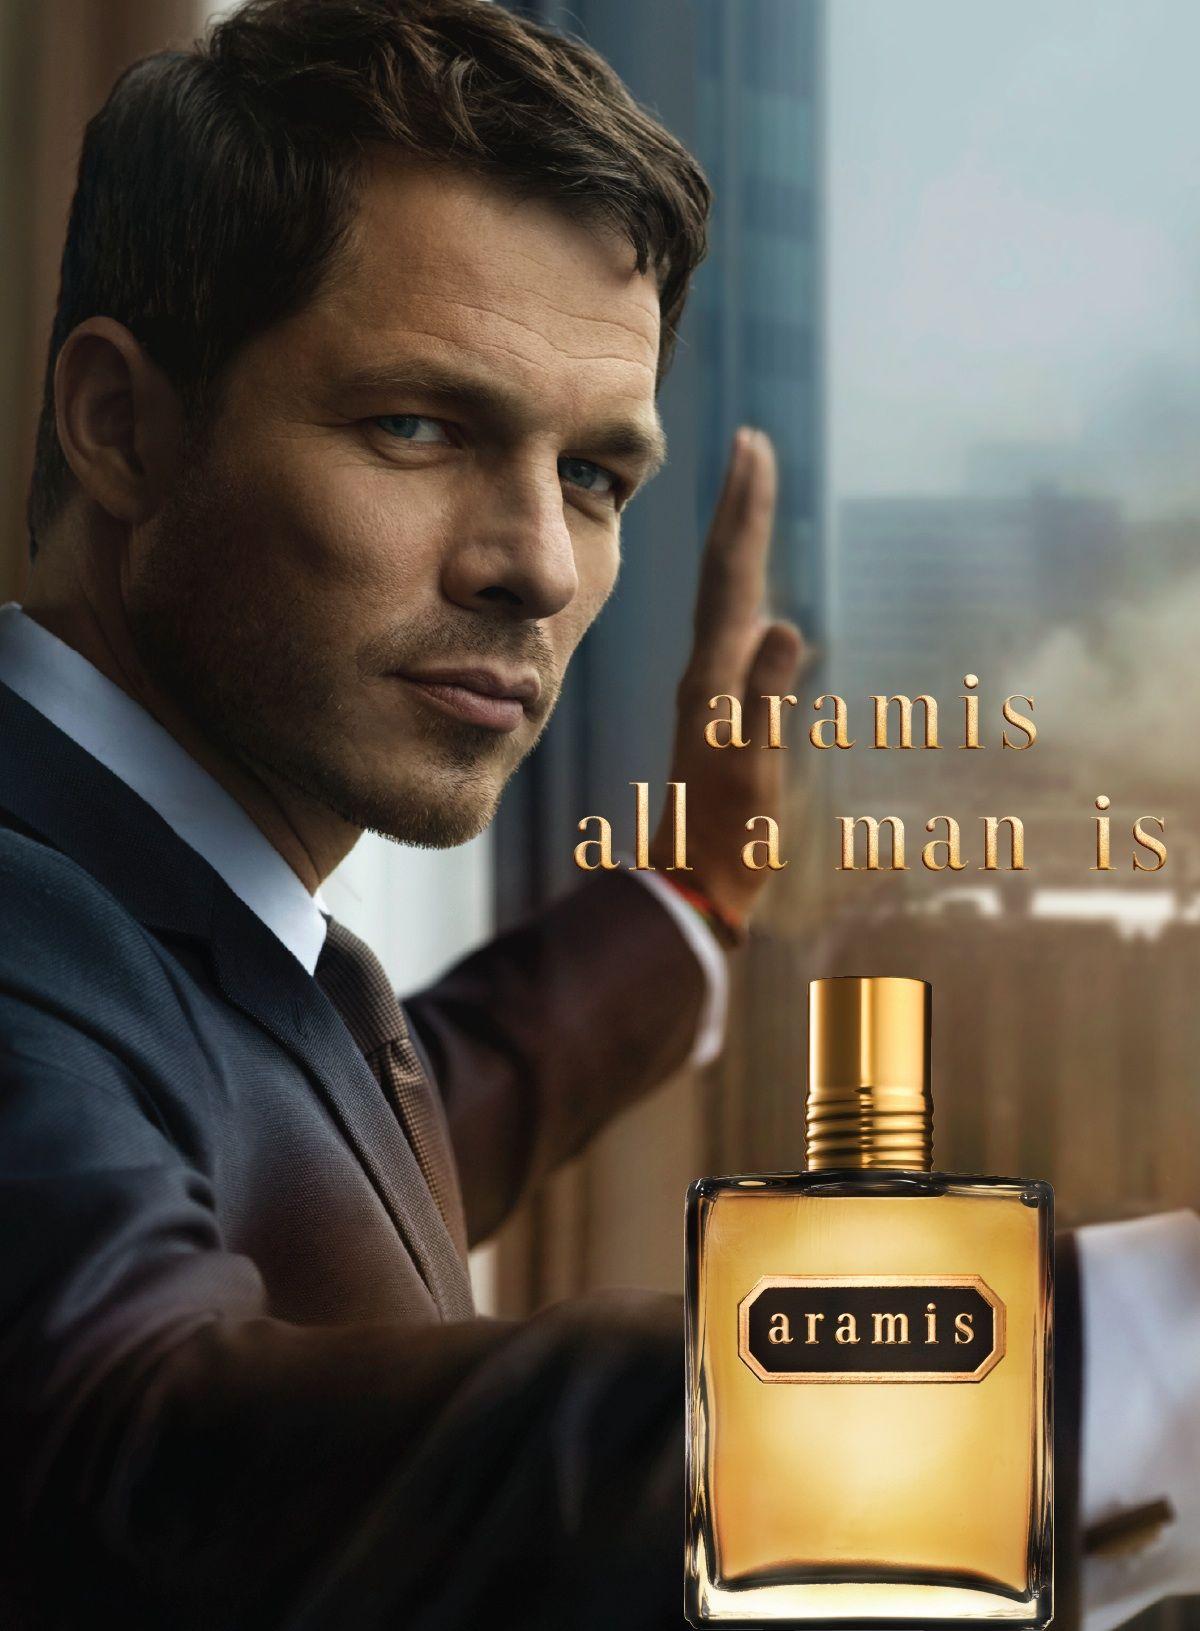 Image result for aramis perfume poster